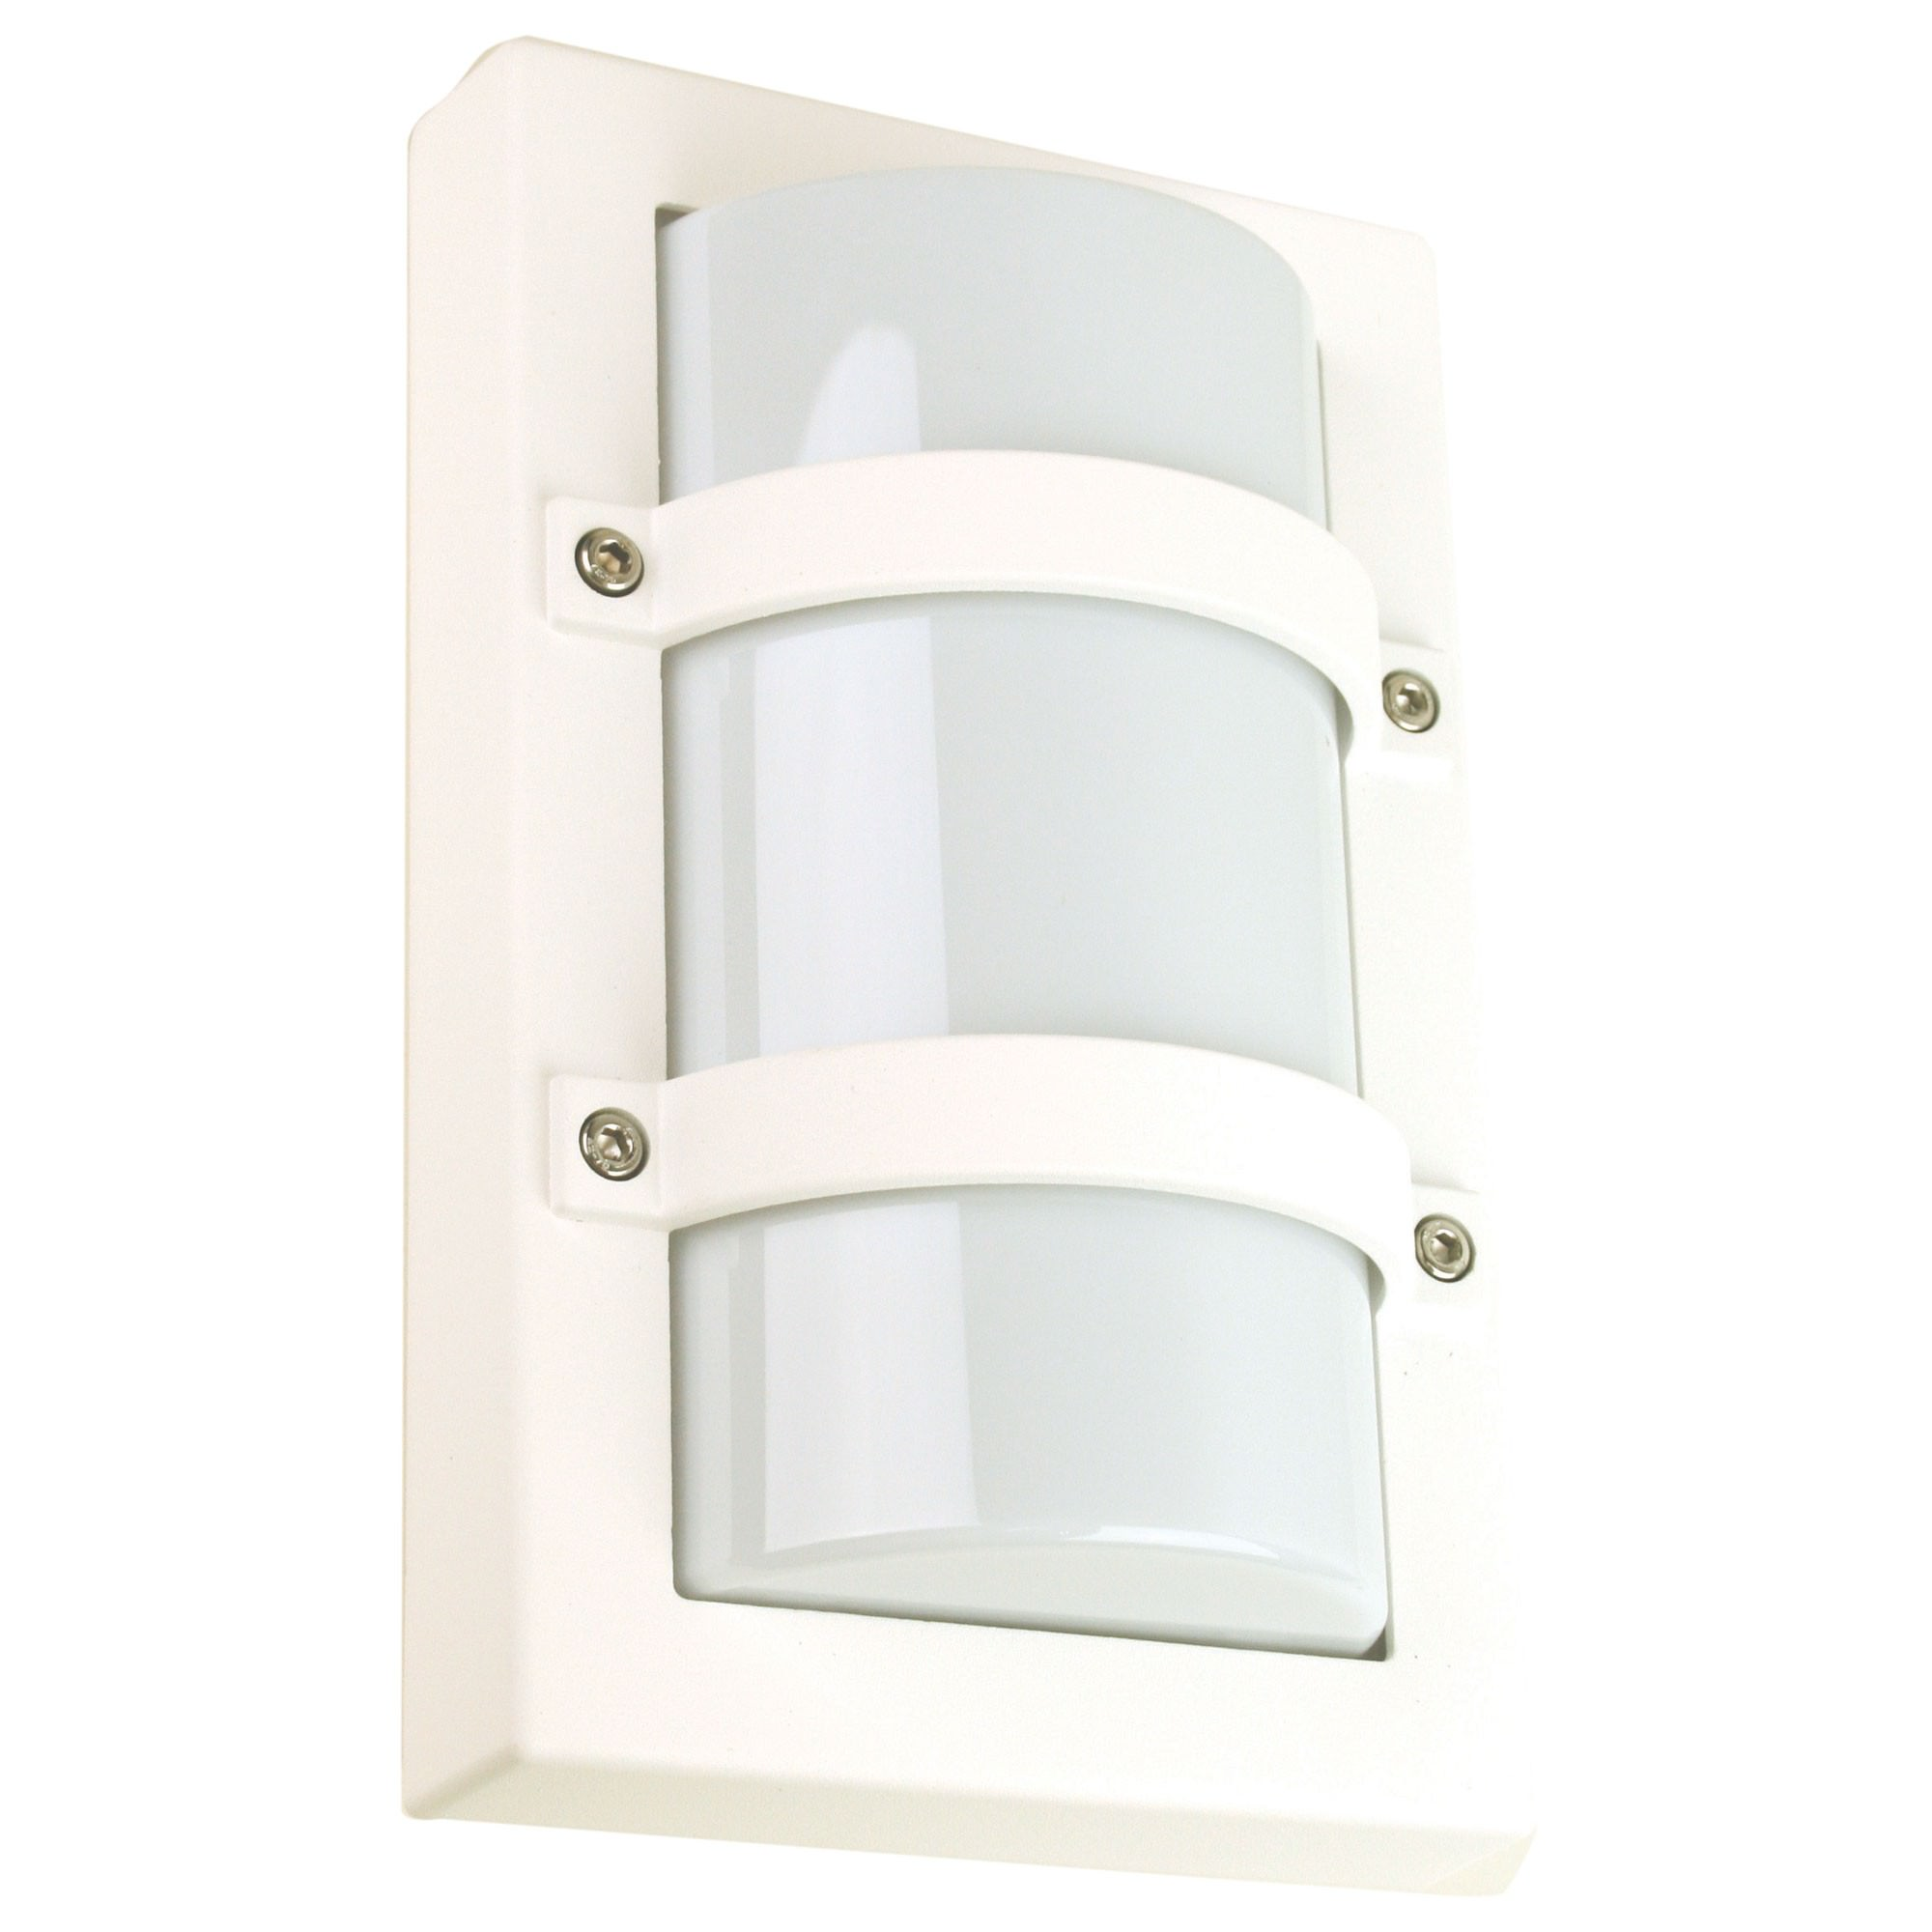 Trio IP65 Commercial Grade Exterior Bunker Wall Light, Small, White